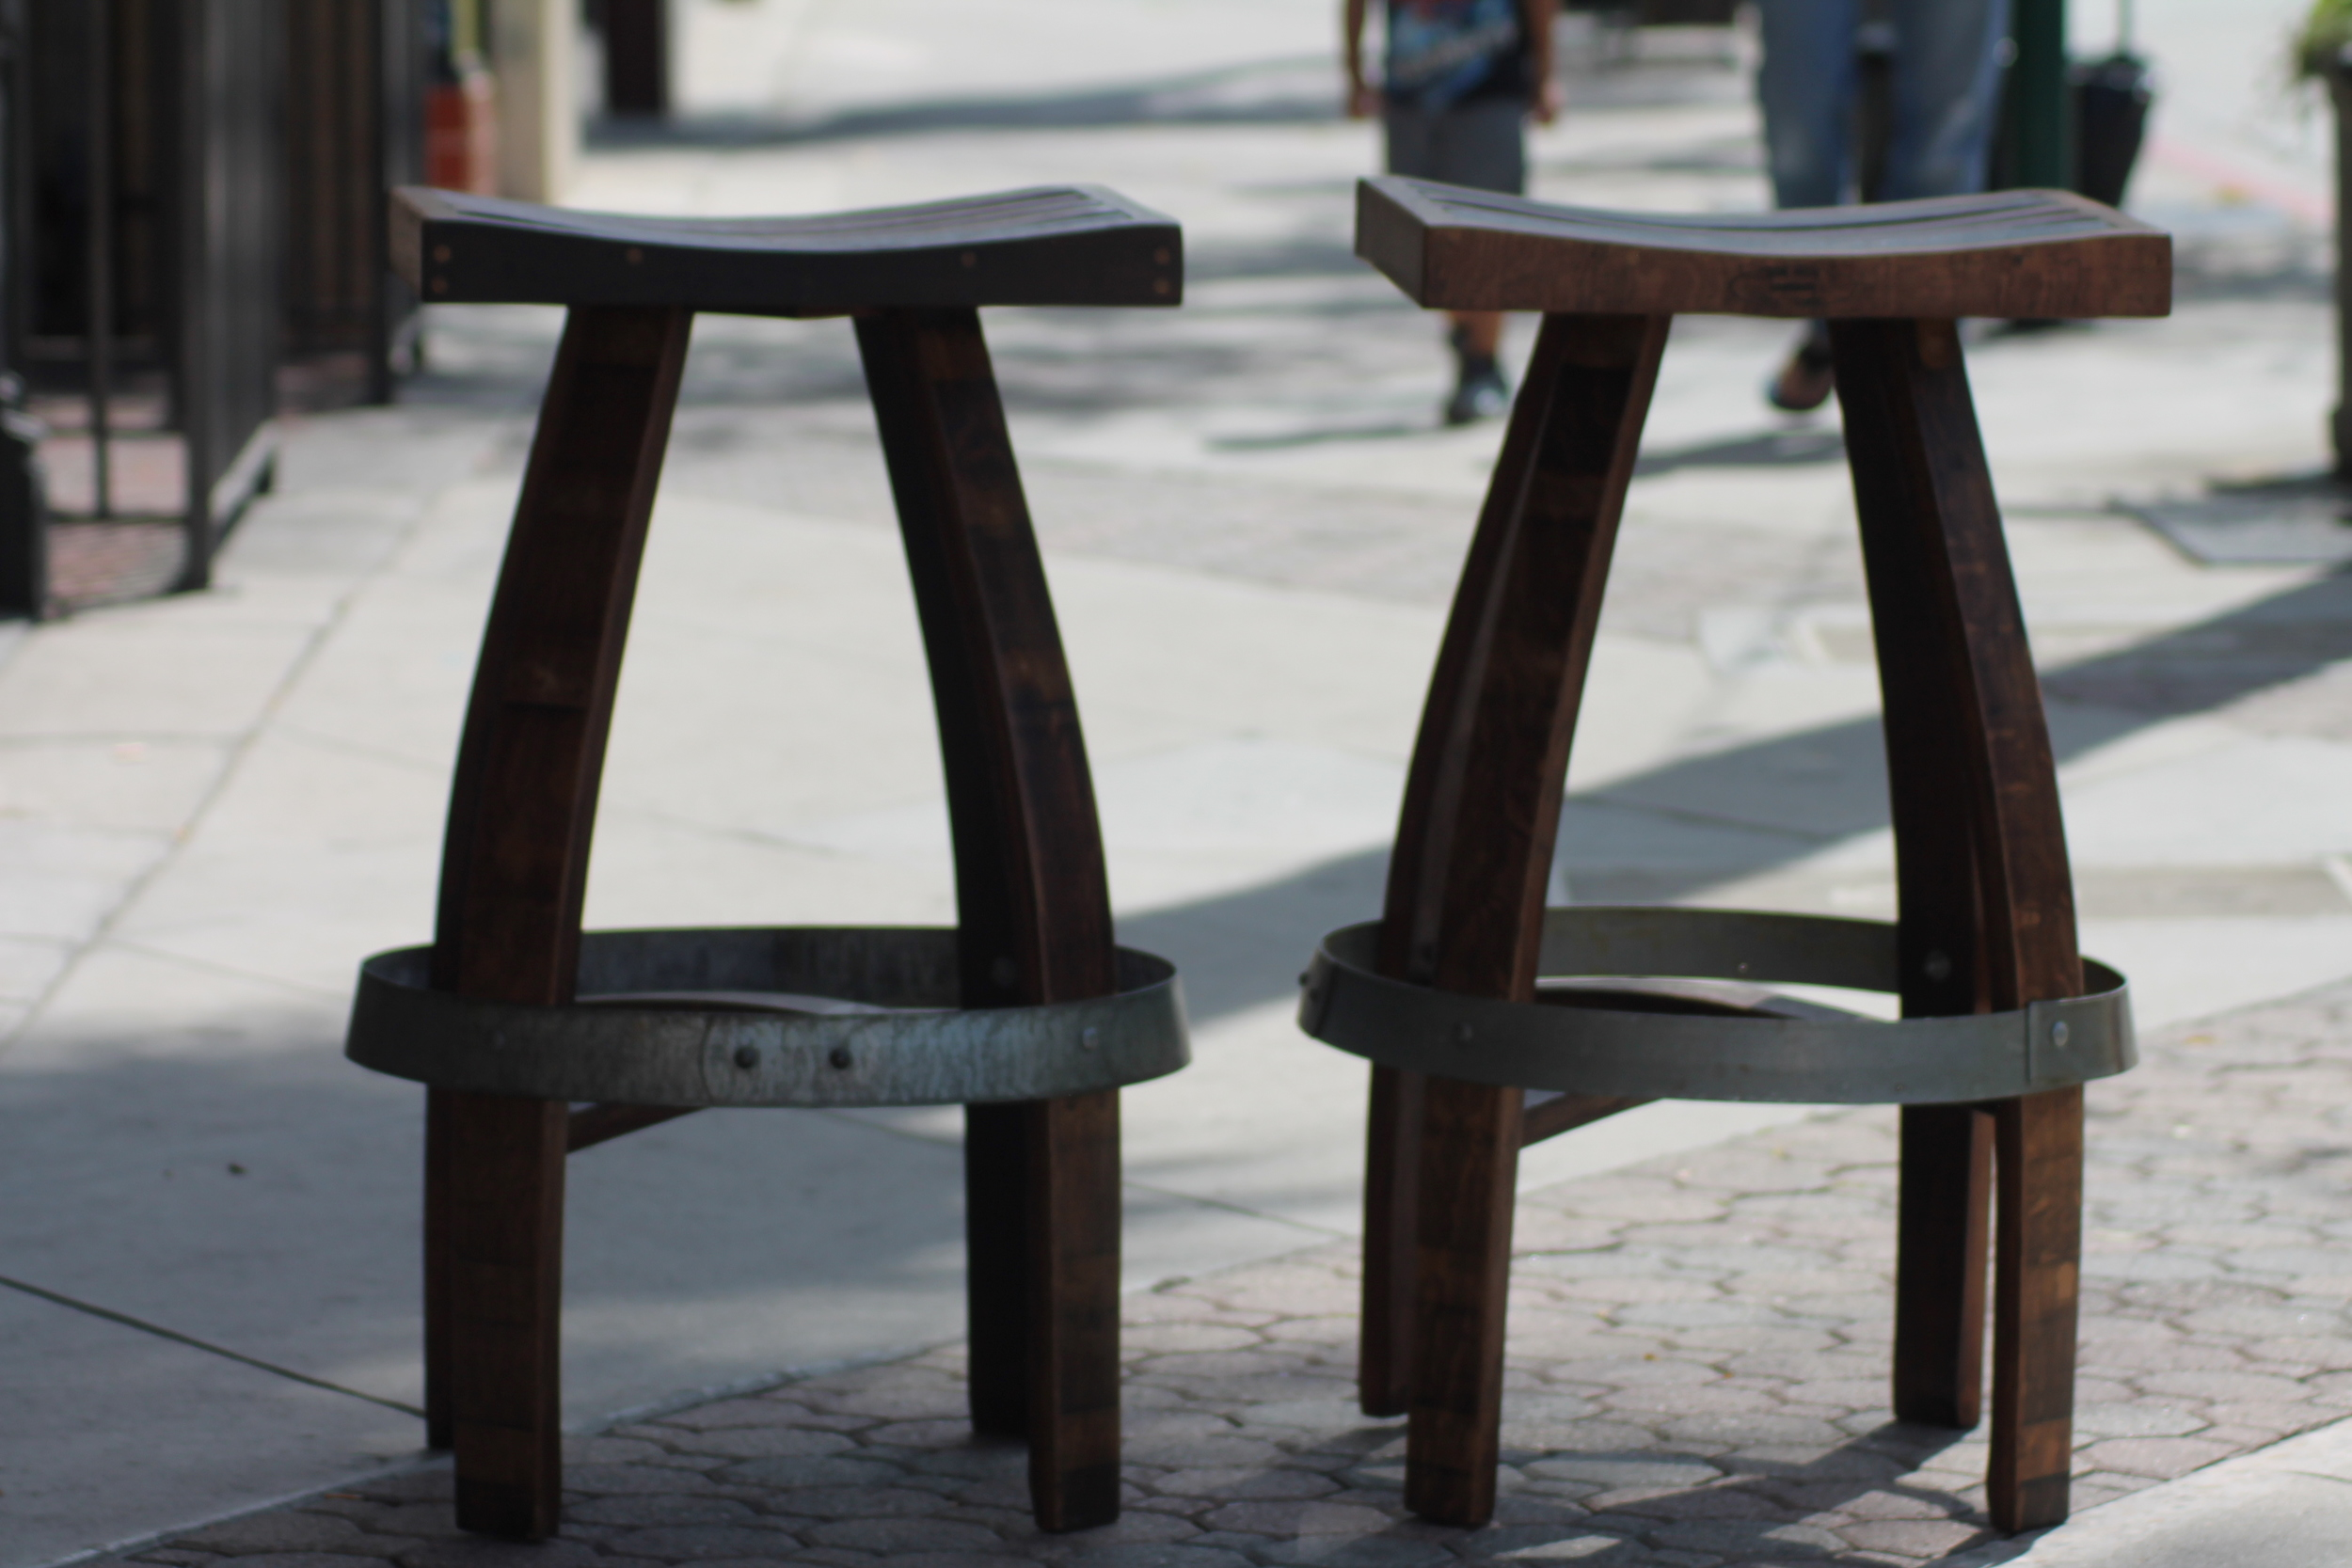 Our Stools can be made in any height or as a Swivel Stool